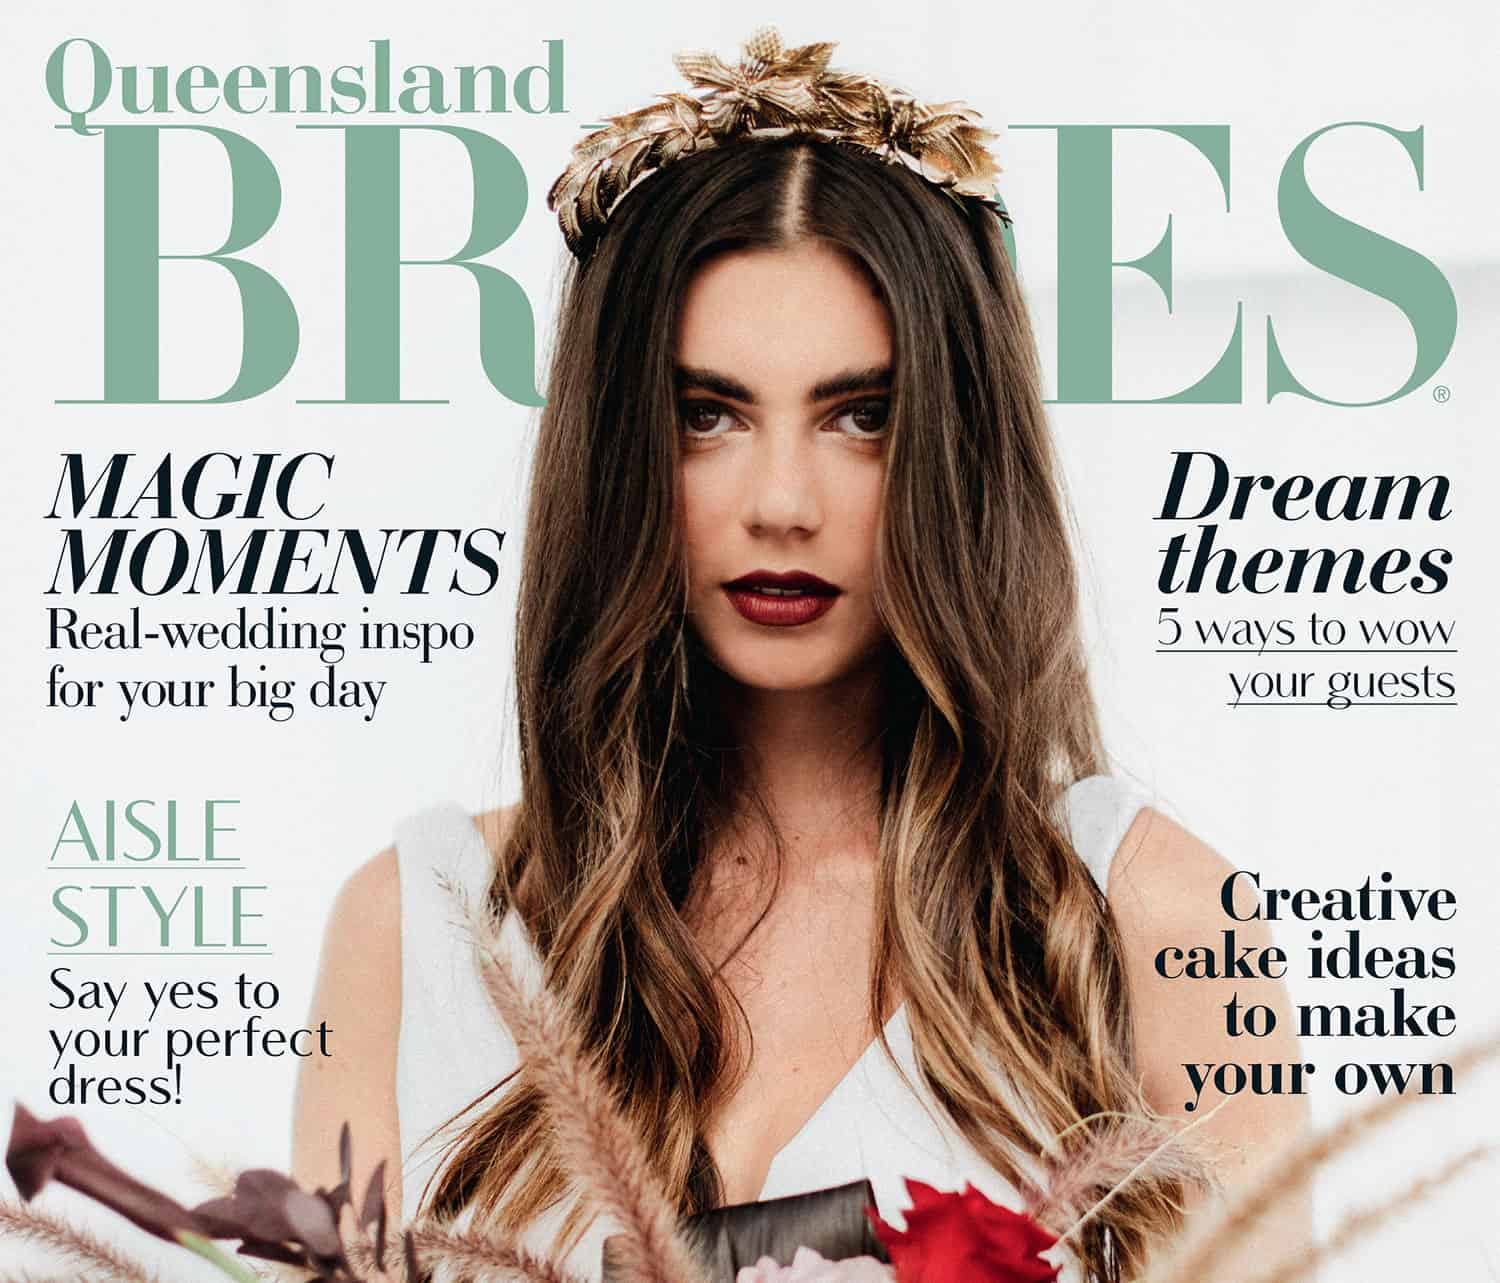 Queensland Brides Magazine Spring Summer 2018 feature image